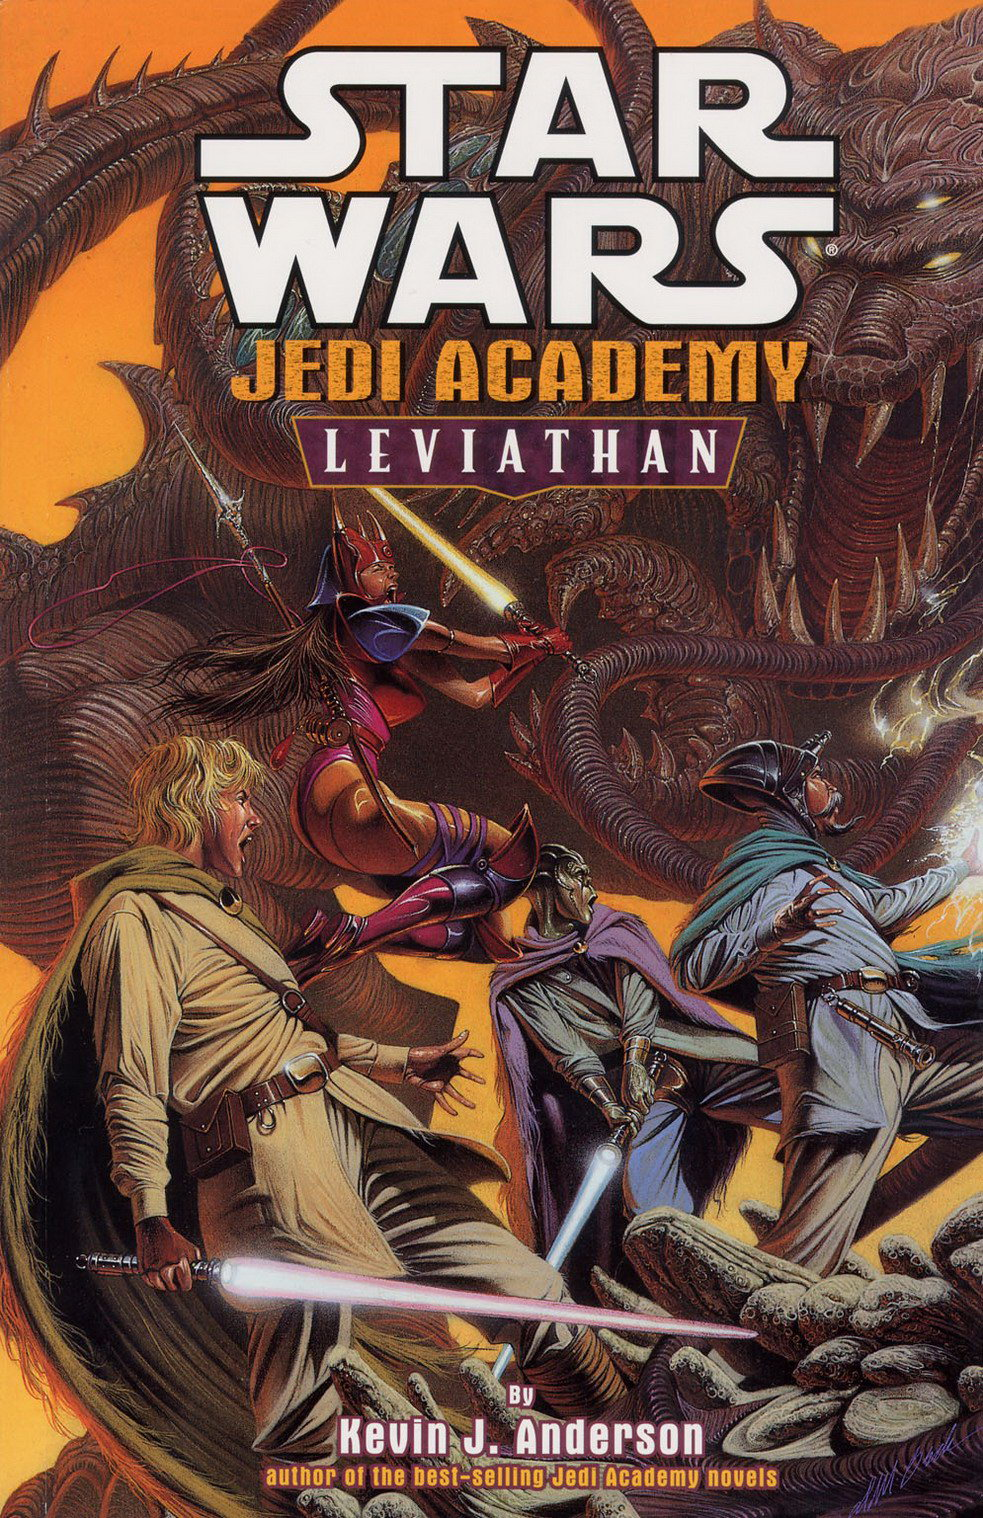 Image result for star wars leviathan jedi academy